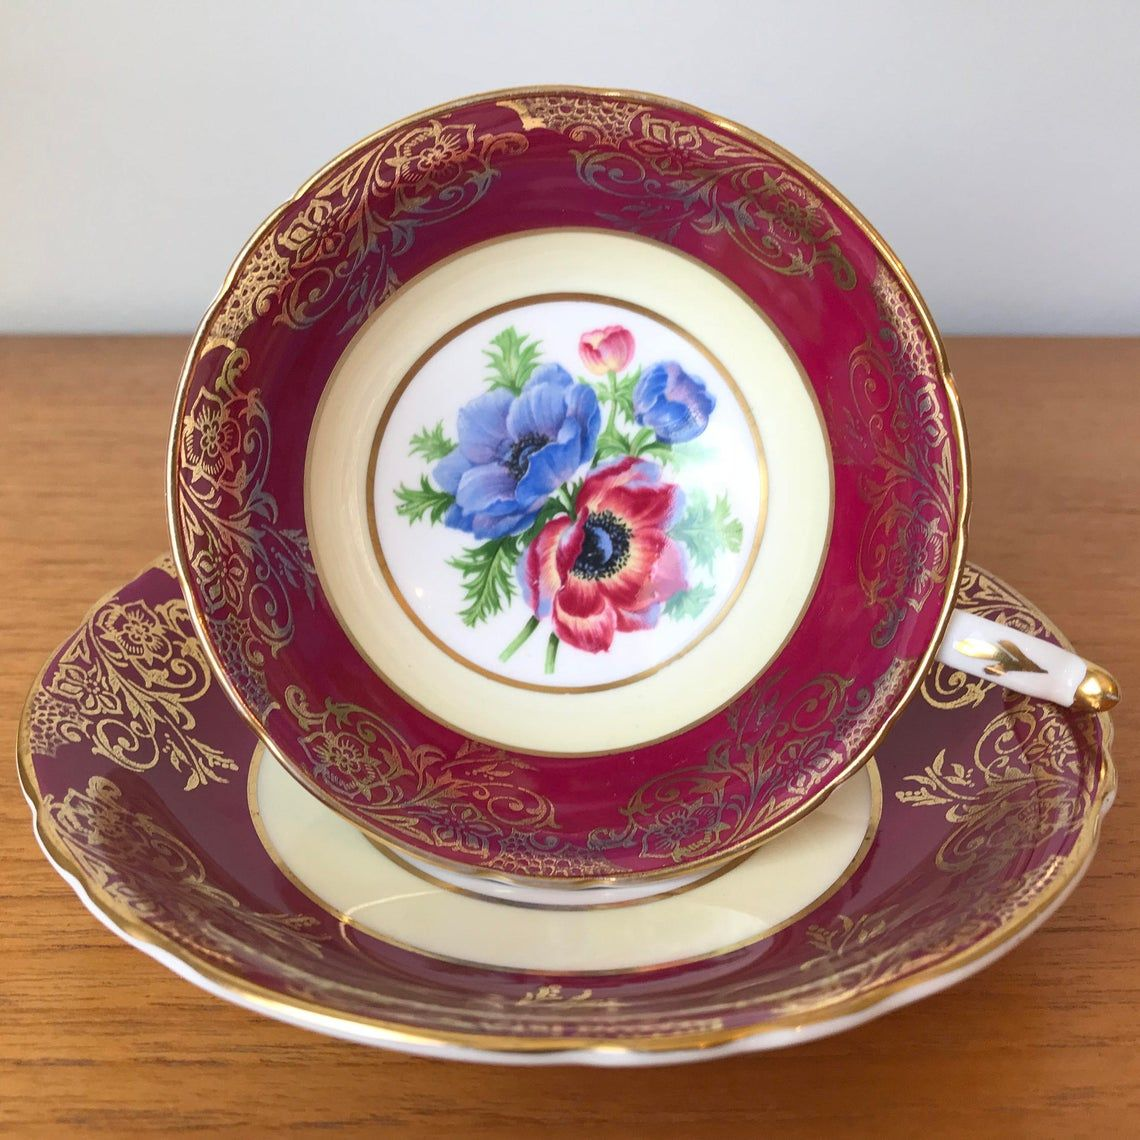 Paragon Dark Pink and Gold Teacup and Saucer, Red and Blue Anemone Poppy Tea Cup and Saucer, Bone China